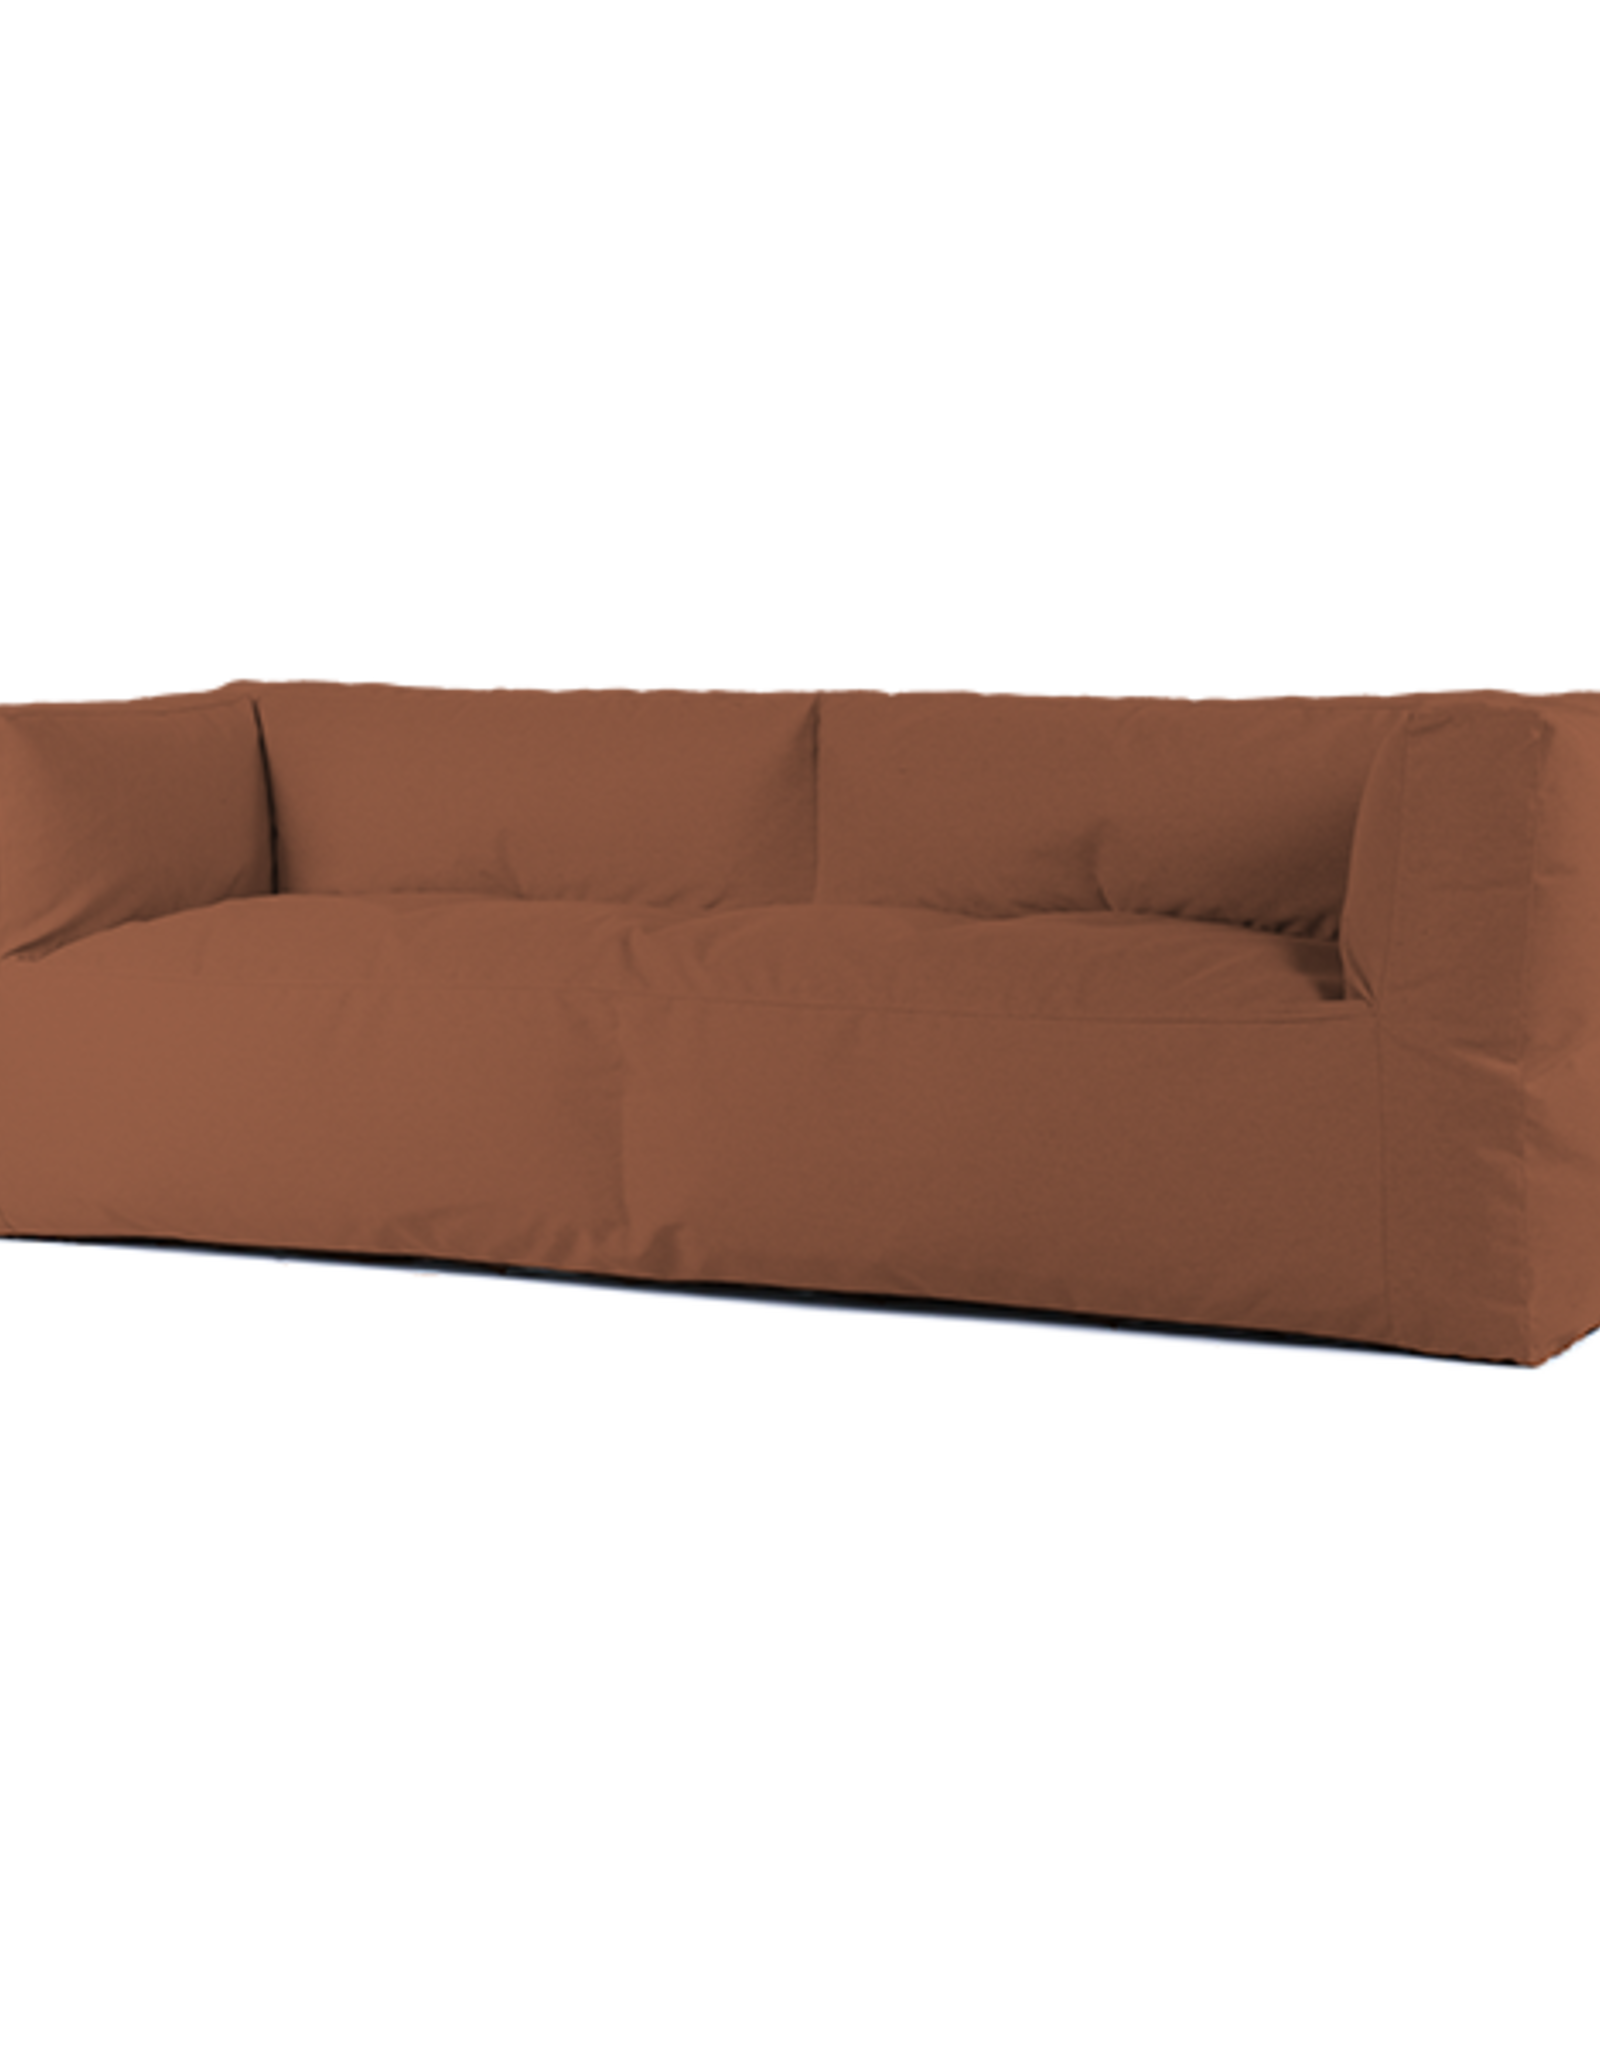 Bryck Bryck - couch 3 zit - Ecocollection - orange